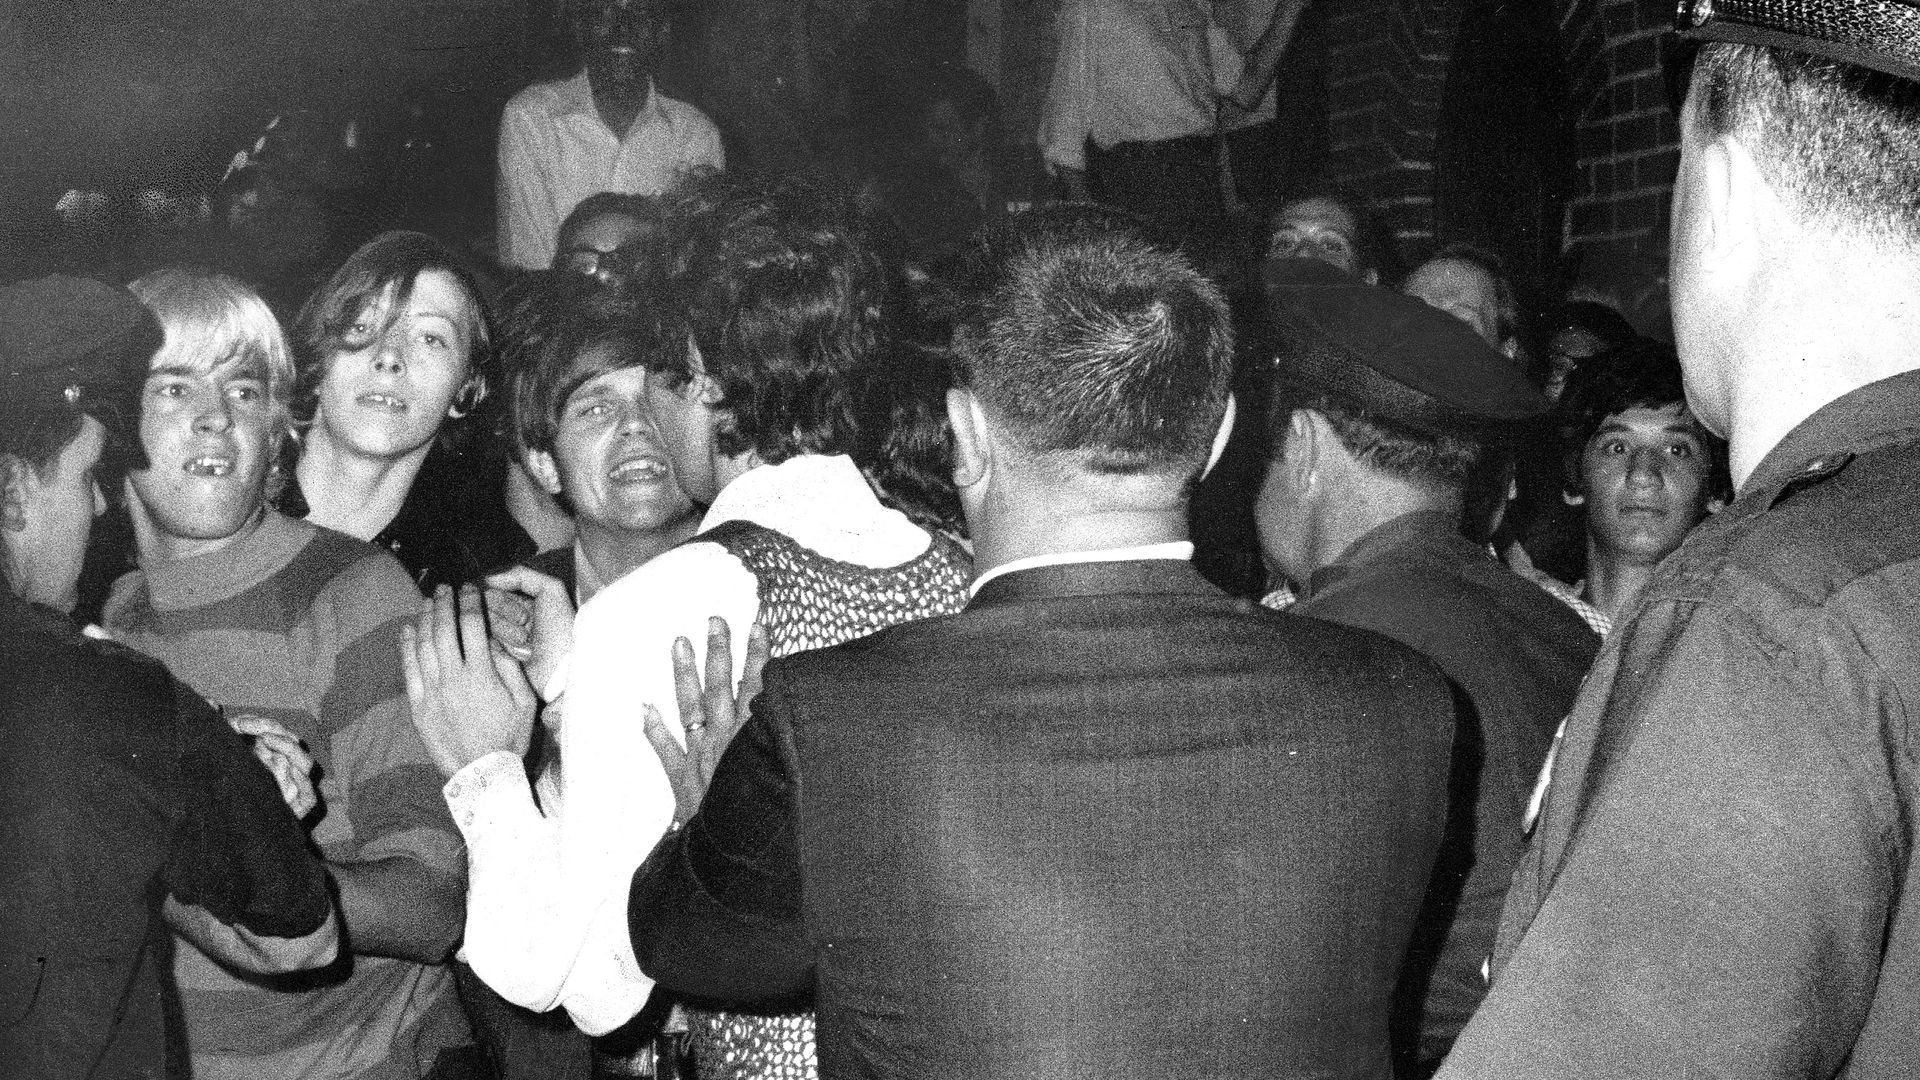 1969 Stonewall Riots in New York City